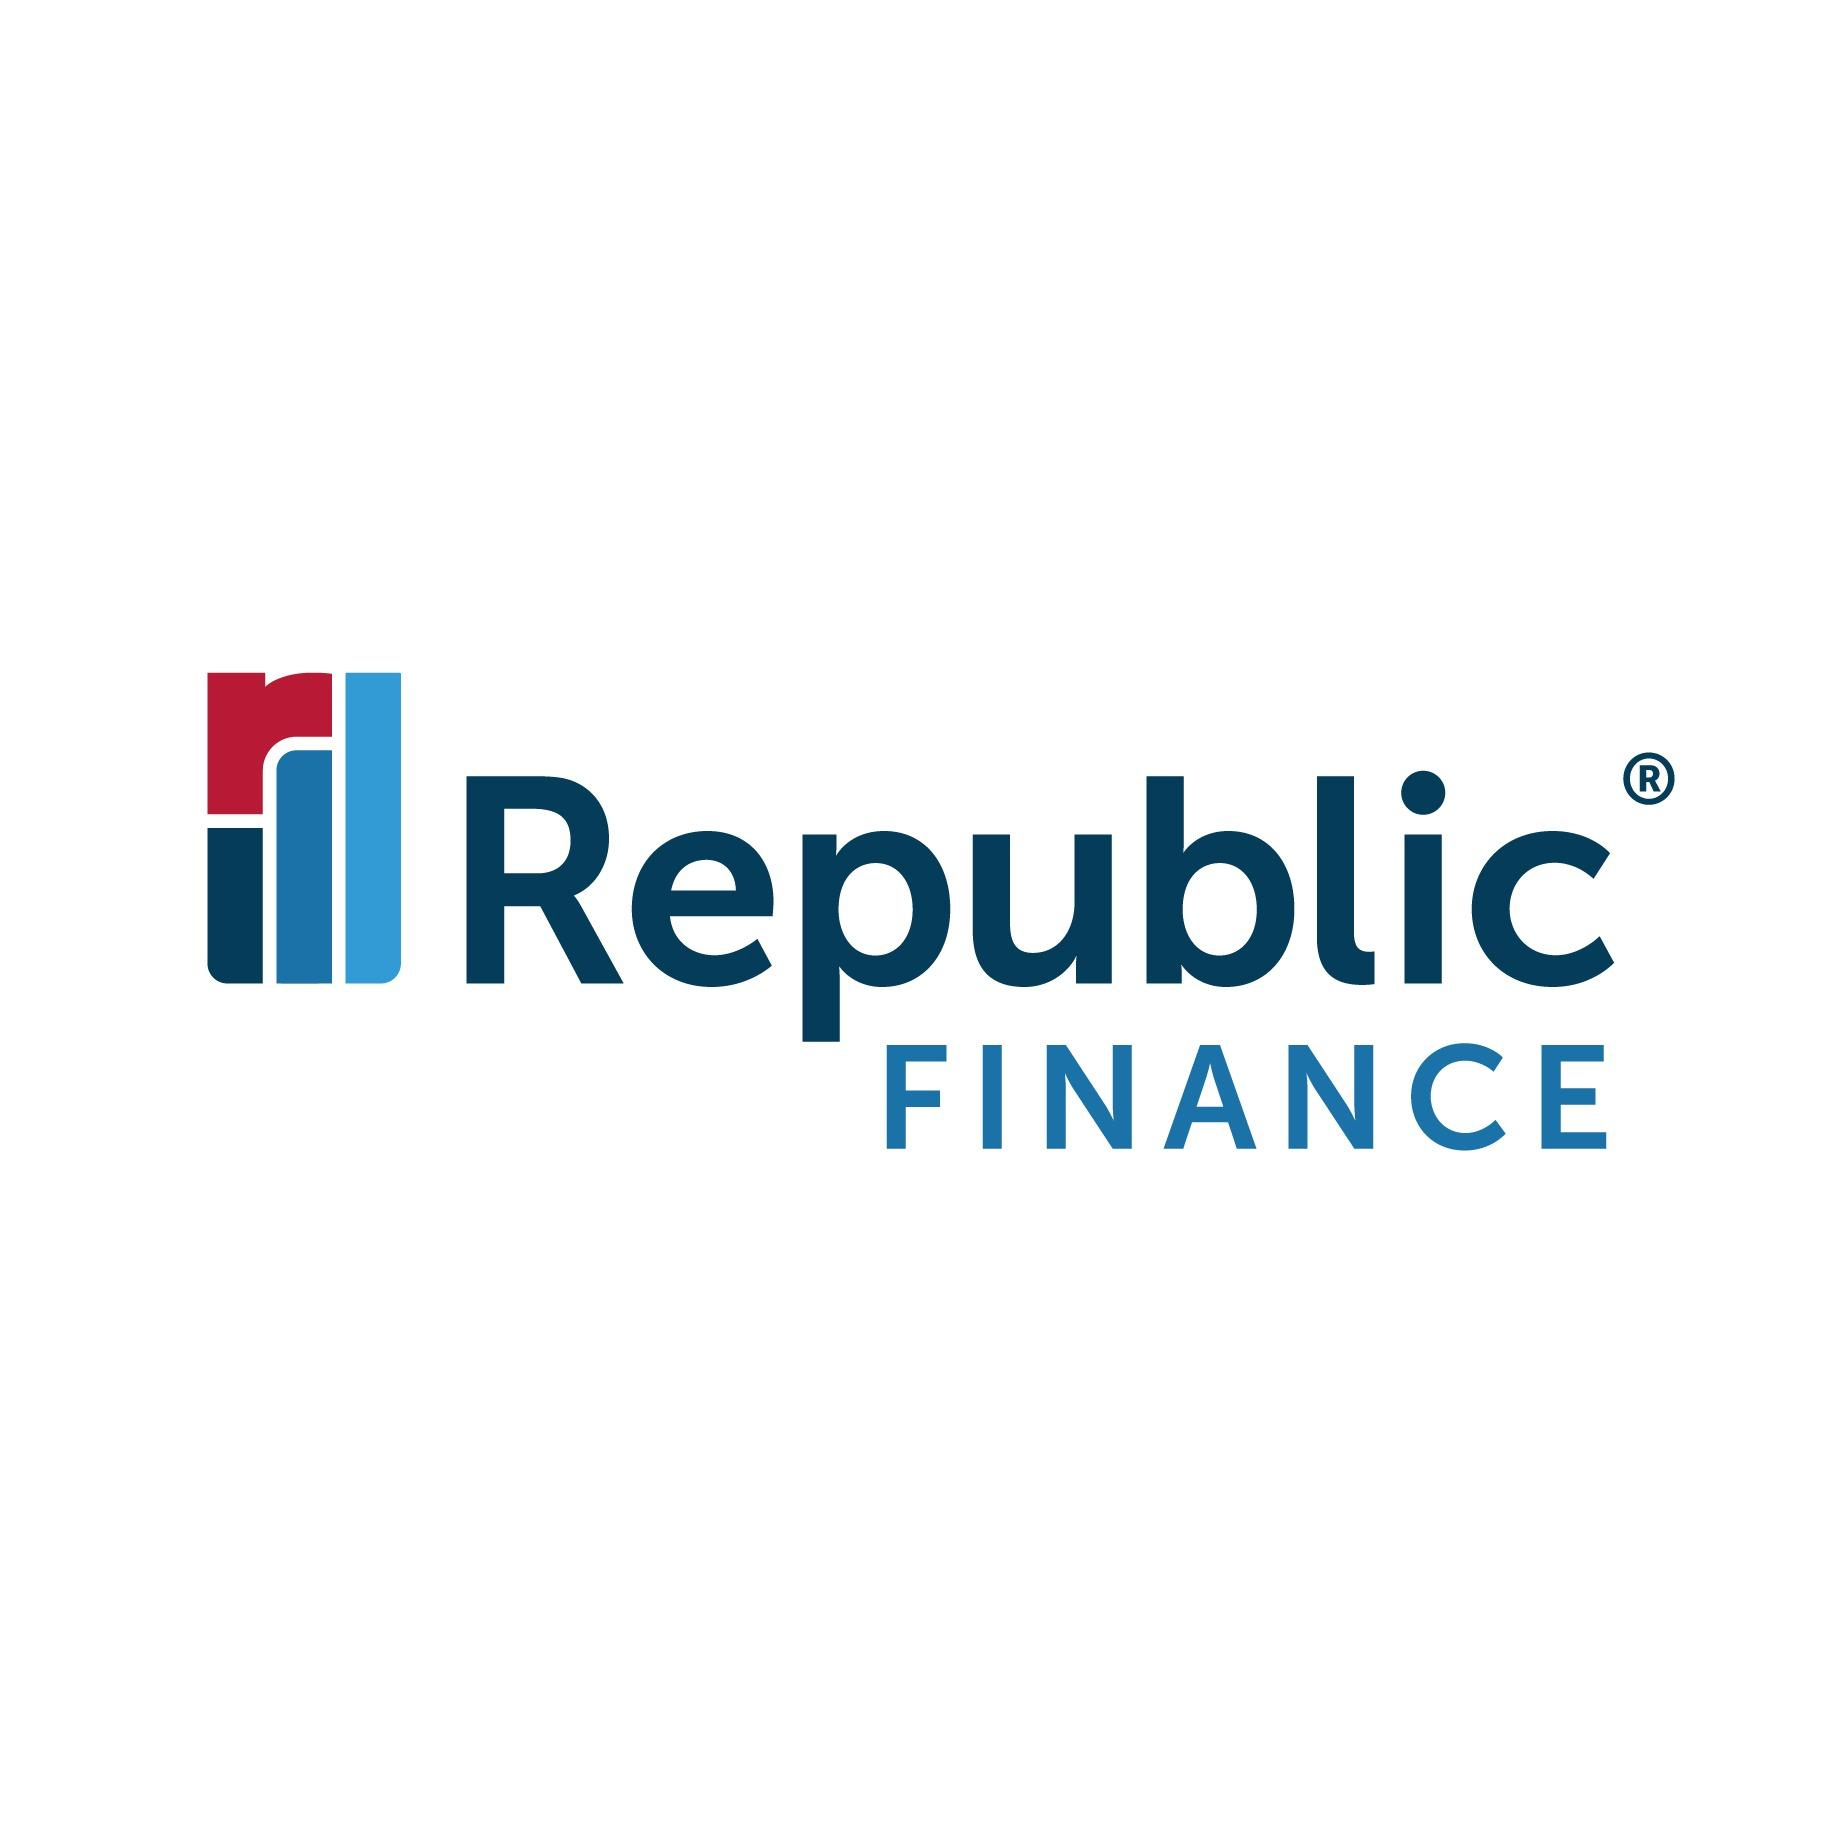 Republic Finance - Franklin, TN 37064 - (615)791-6139 | ShowMeLocal.com